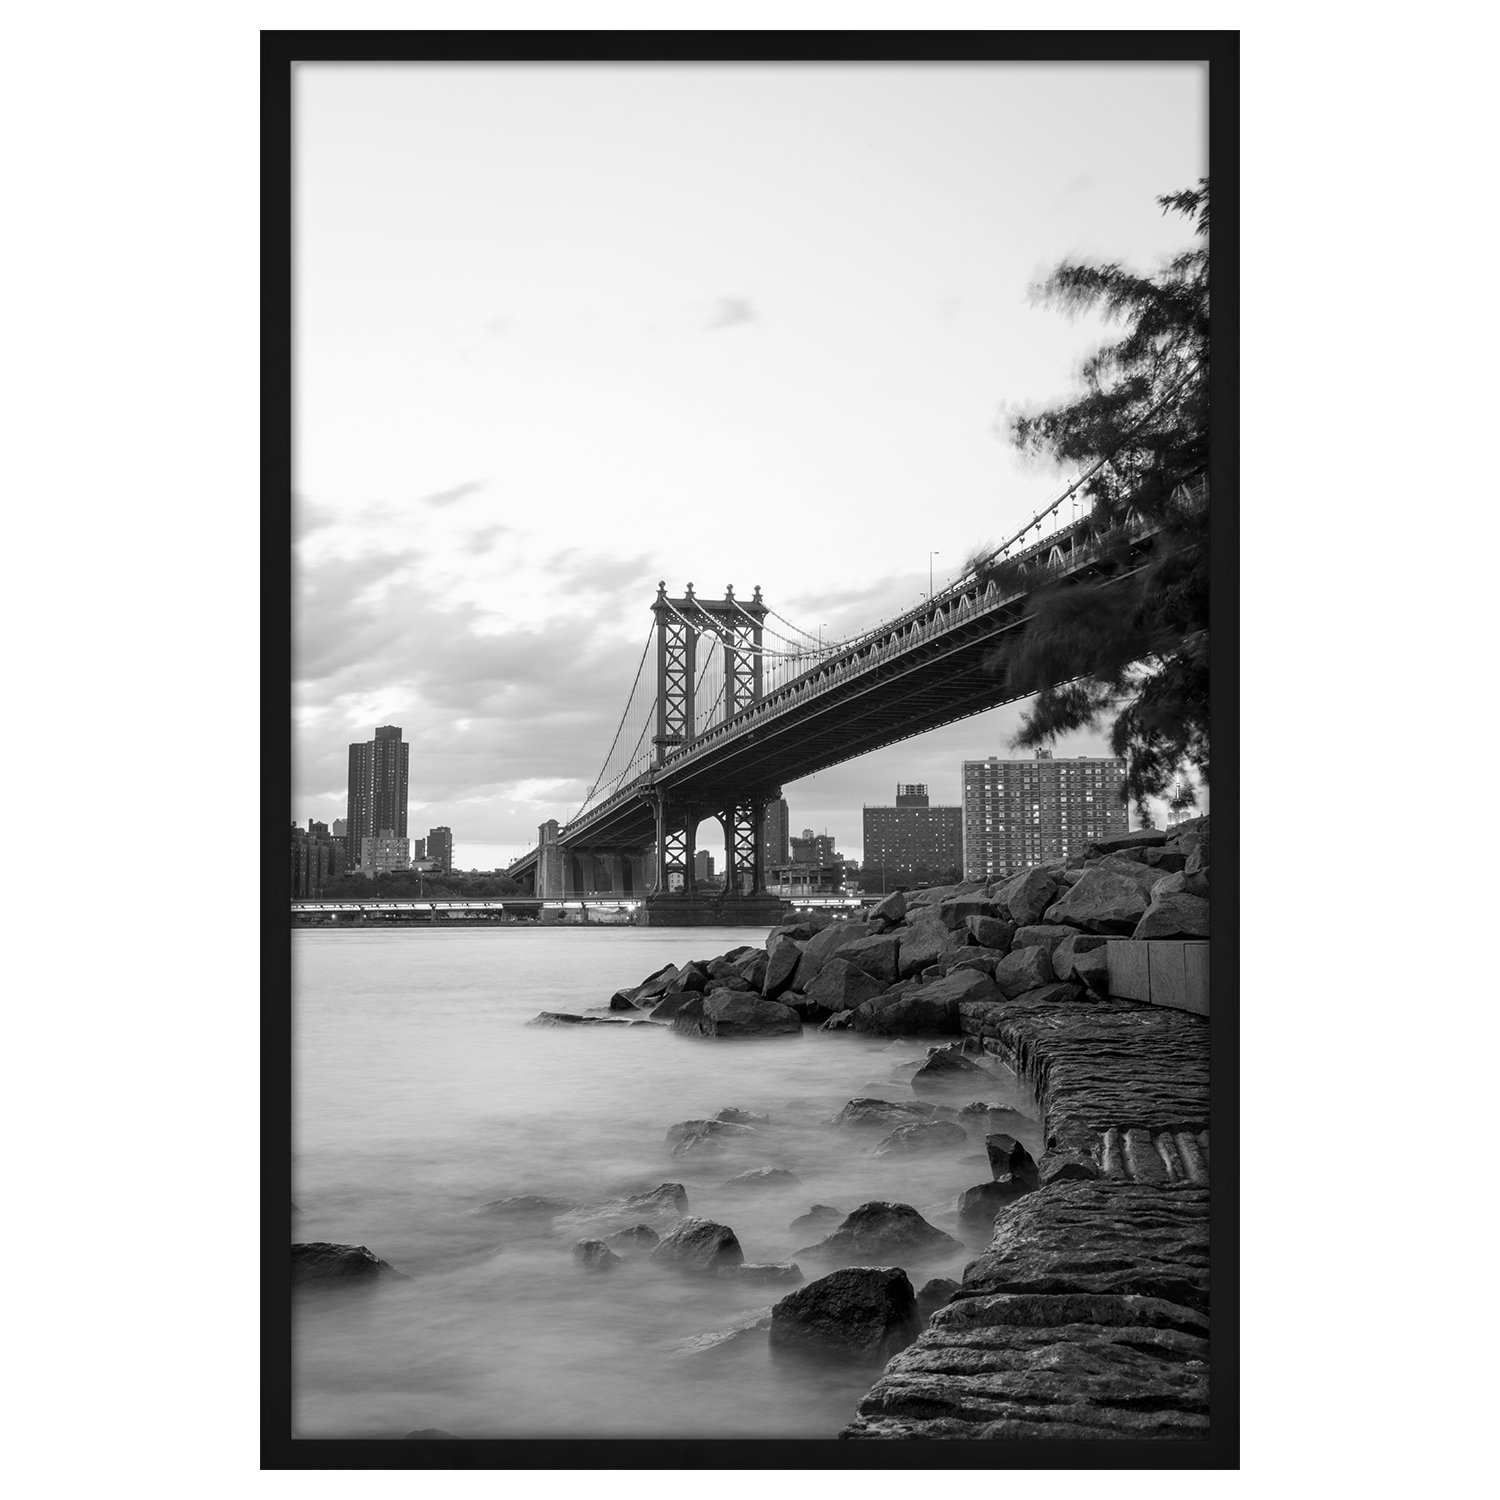 Americanflat 24x36 Black Poster Frame - Designed to Display Vertically or Horizontally on a Wall - Plexiglass Front